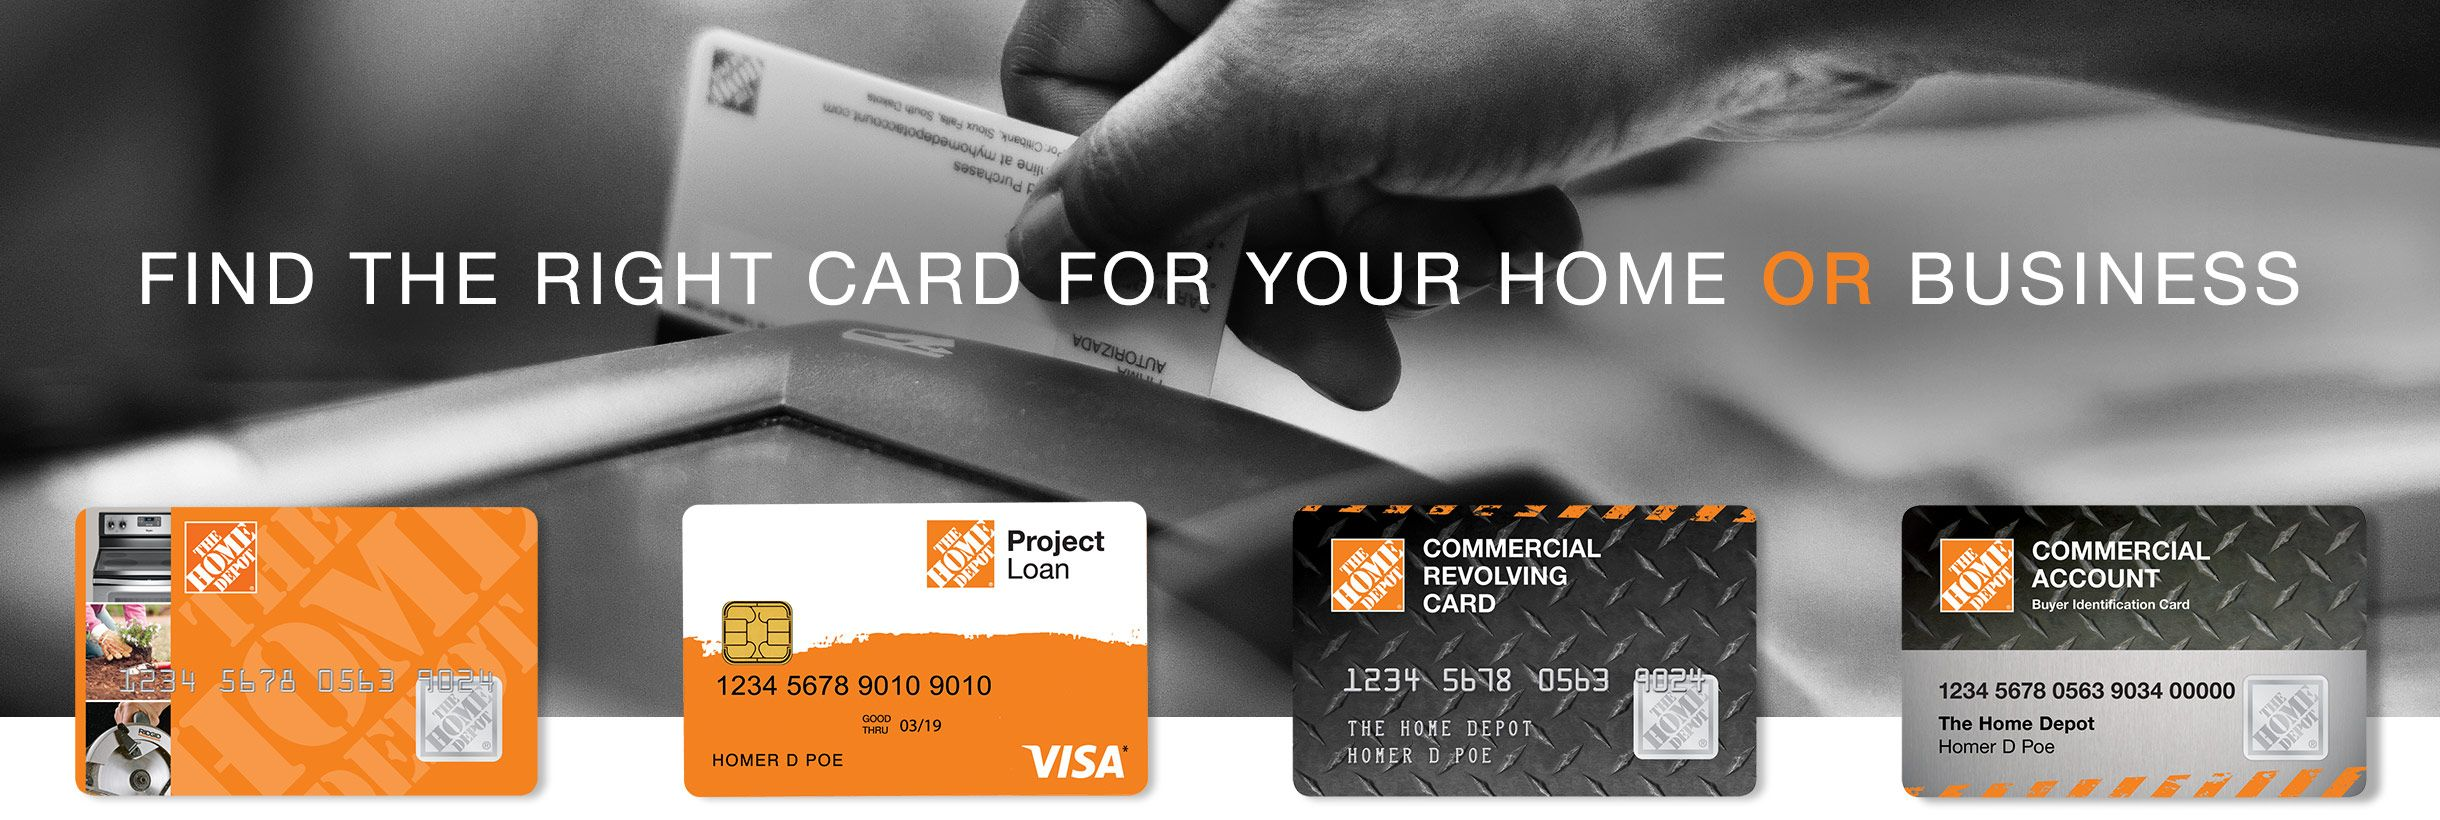 Instant approval credit cards for bad credit in south africa